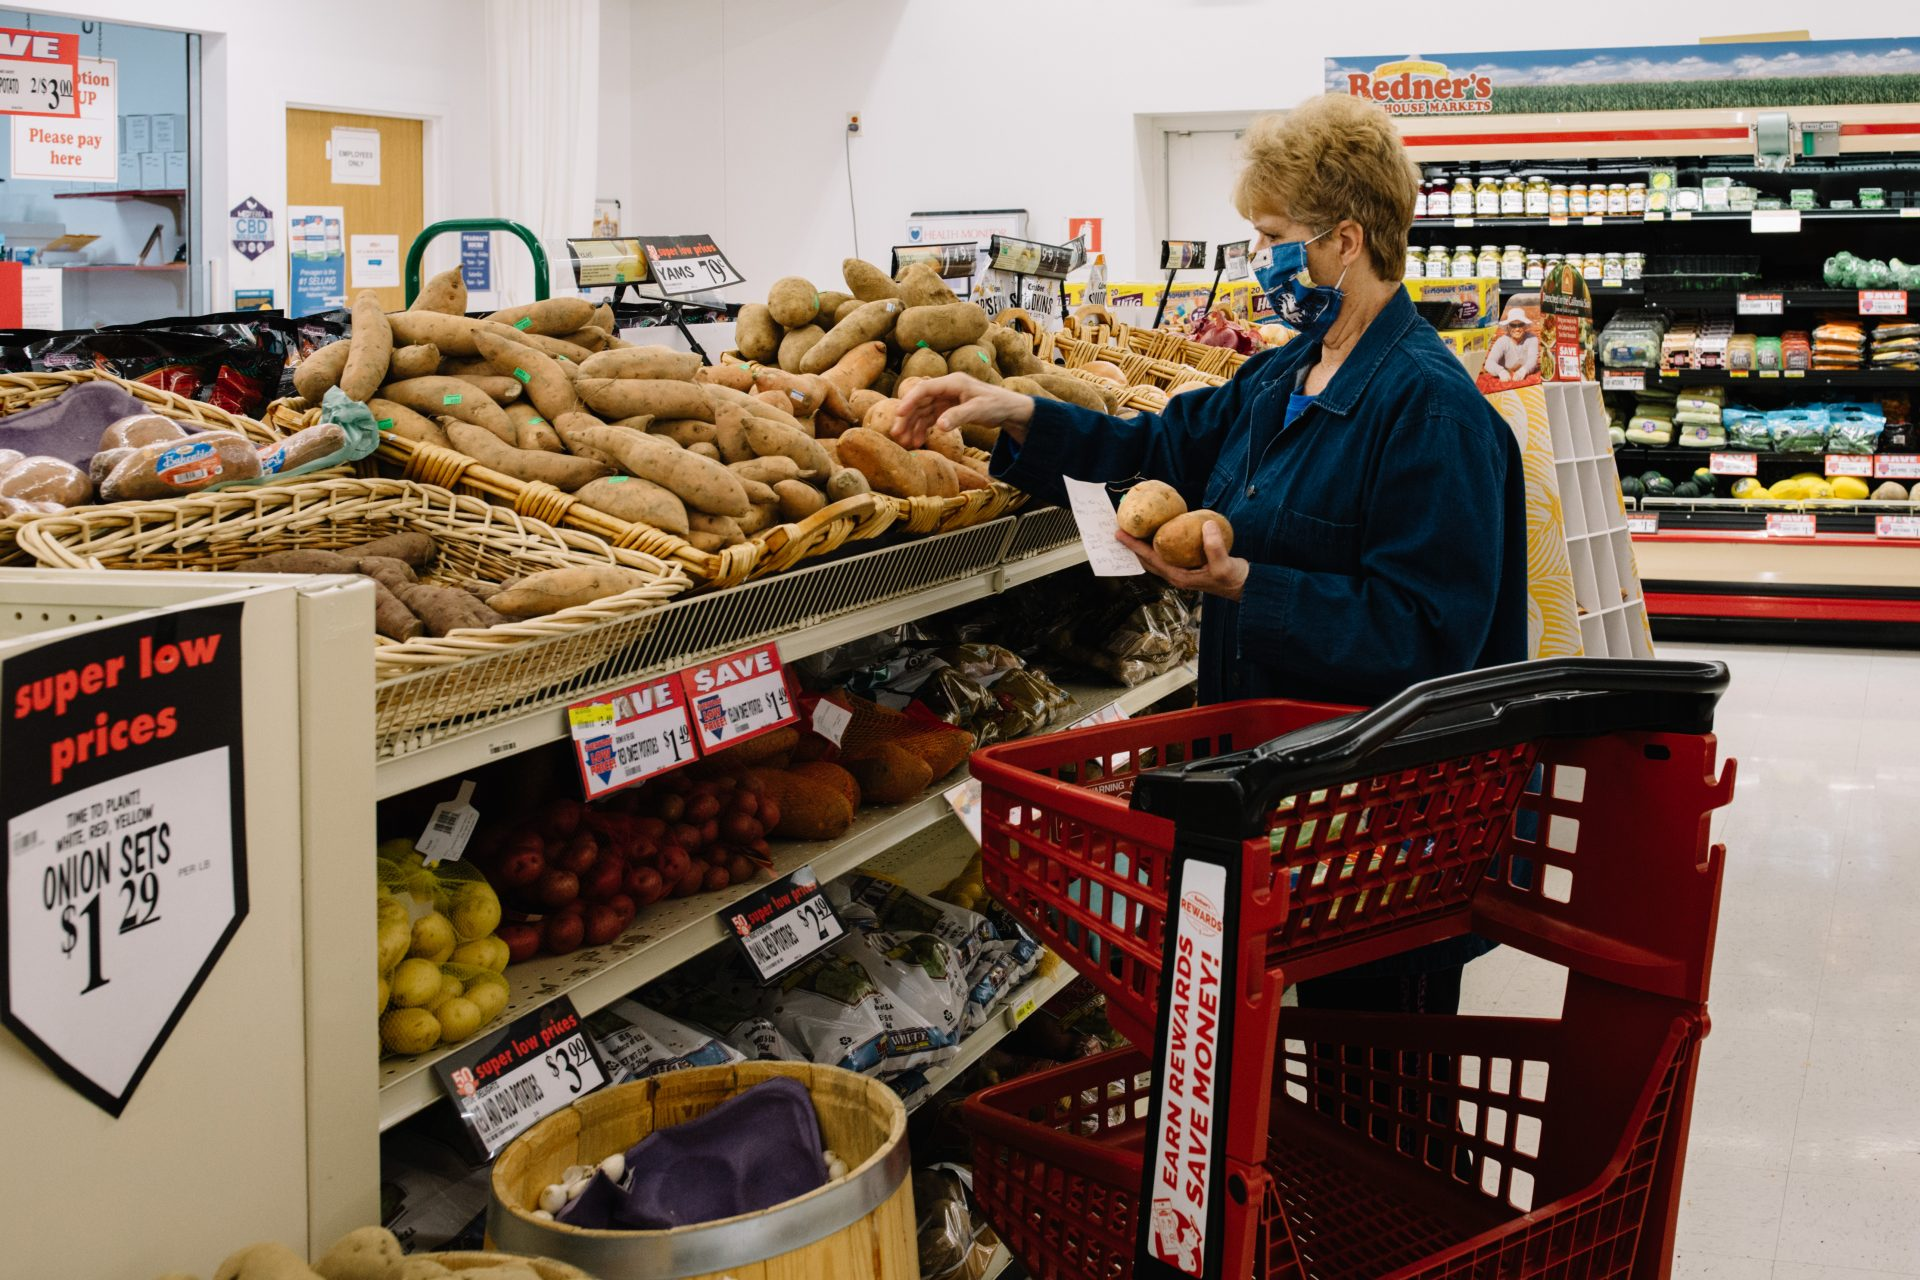 A shopper wearing a fabric mask picks out potatoes at the grocery store on April 10, 2020.